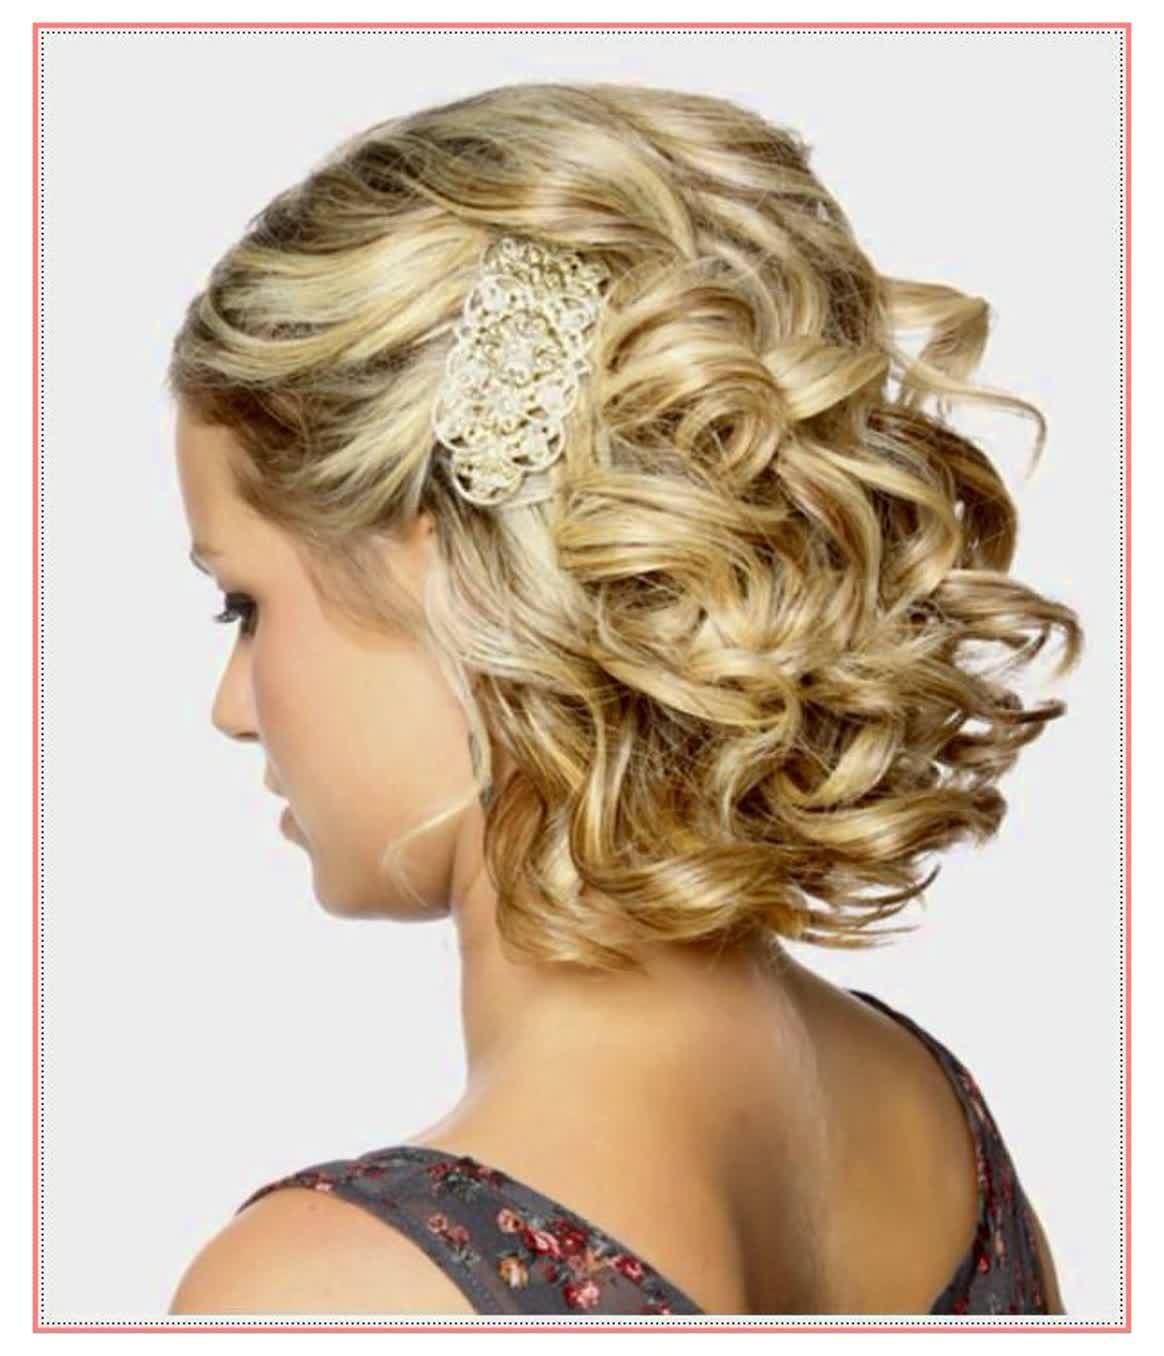 16 Prodigious Girls Hairstyles Updos Ideas Formal Hairstyles For Short Hair Cute Curly Hairstyles Hair Styles